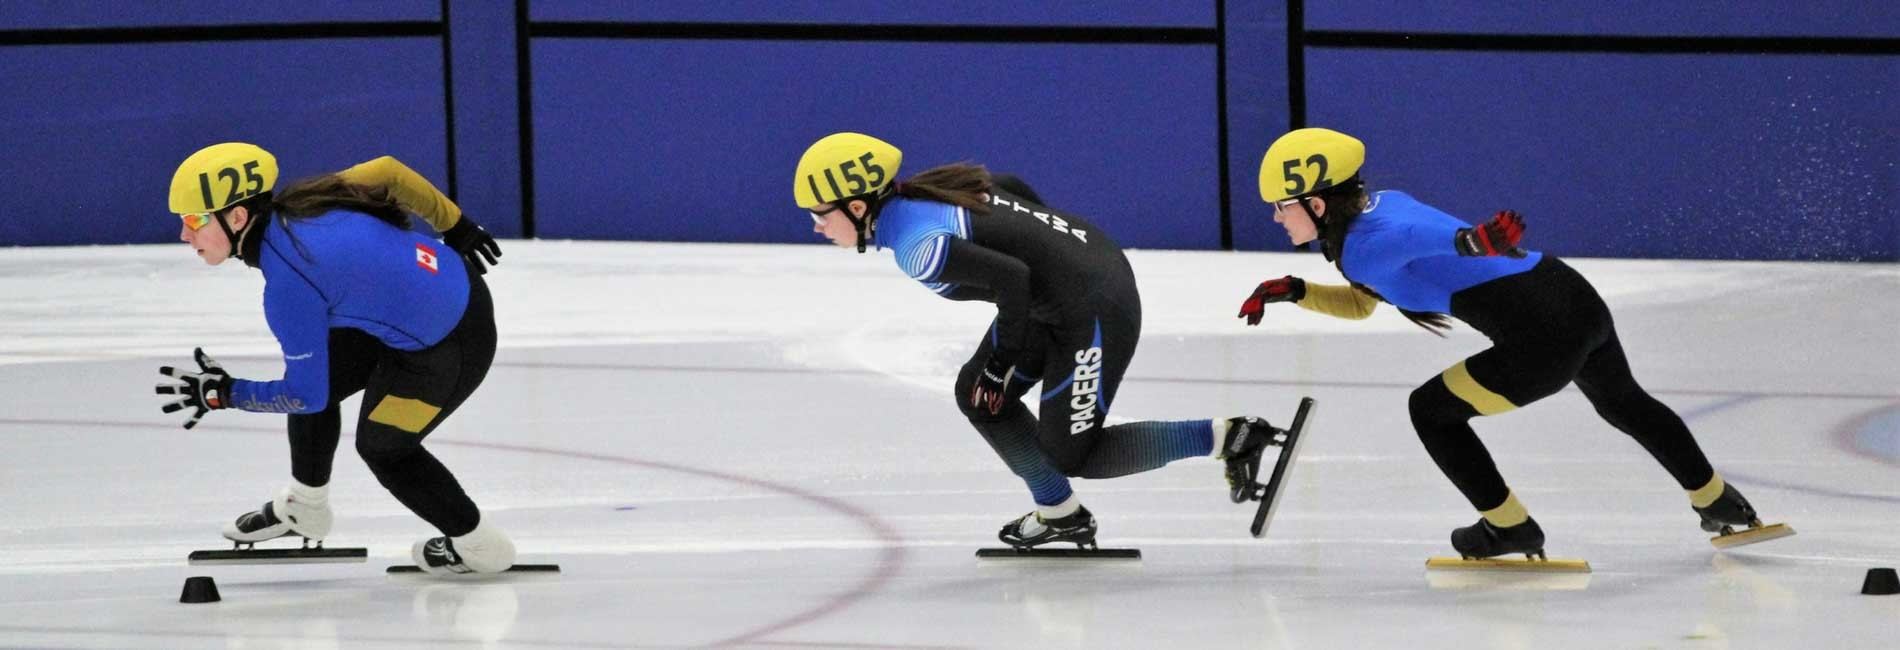 Standard swscd   speed skating   activity page banner  1900x650